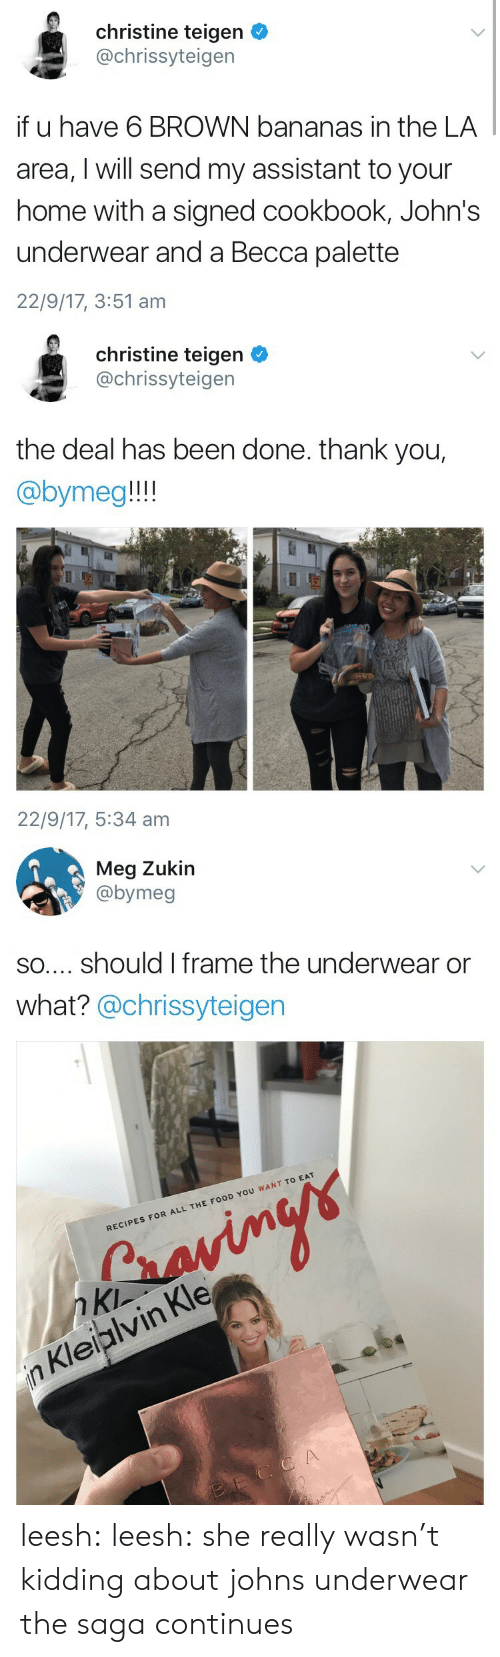 Food, Tumblr, and Thank You: christine teigen  @chrissyteigen  if u have 6 BROWN bananas in the LA  area, I will send my assistant to your  home with a signed cookbook, John's  underwear and a Becca palette  22/9/17, 3:51 am   christine teigen  @chrissyteigen  the deal has been done. thank you,  @bymeg!!!  22/9/17, 5:34 am   Meg Zukir  @bymeg  so.... should I frame the underwear or  what? @chrissyteiger  RECIPES FOR ALL THE FOOD YOU WANT TO EAT  n Kln  n Kleiplvin Kle leesh: leesh:  she really wasn't kidding about johns underwear  the saga continues